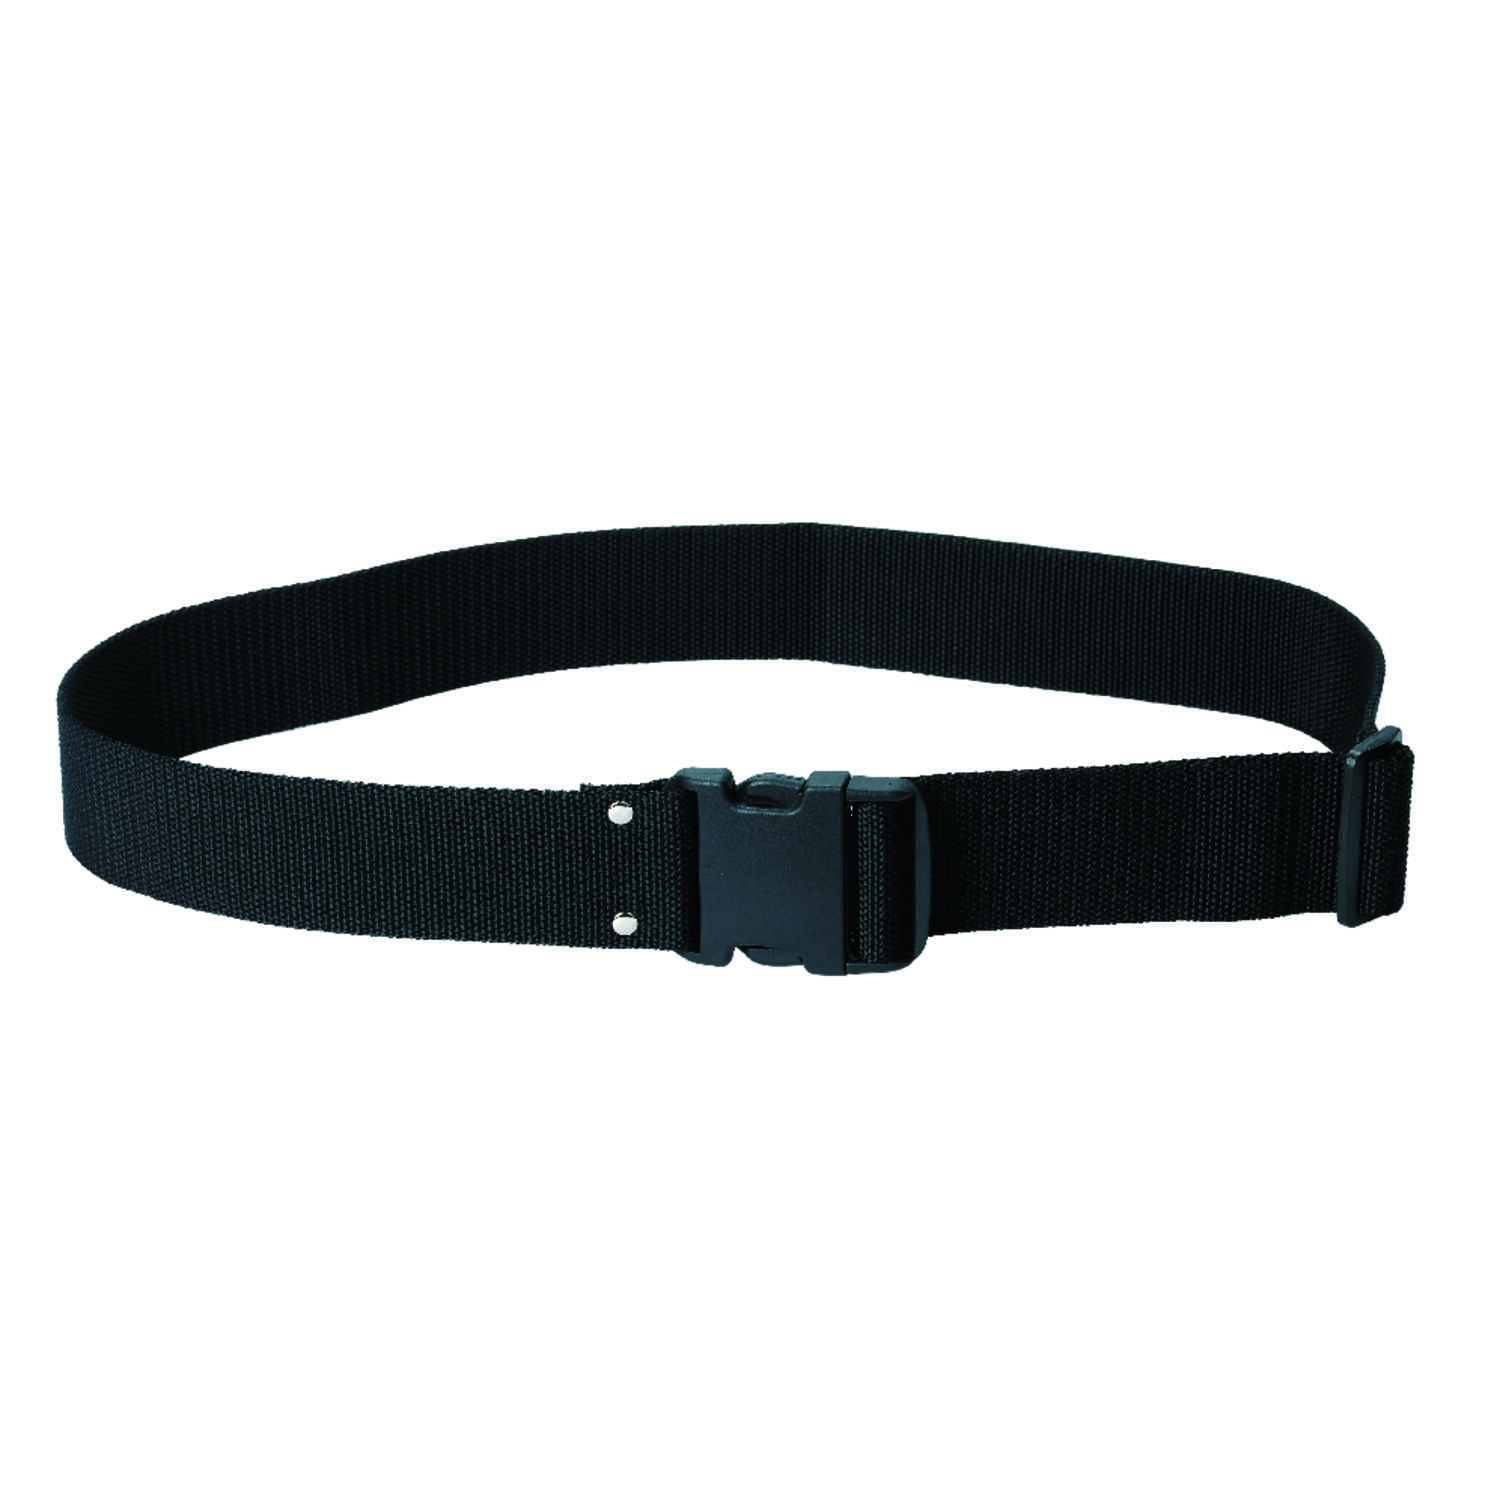 CLC Work Gear  Polyester Fabric  2.5 in. L x 7.25 in. H Black  29  46  Work Belt